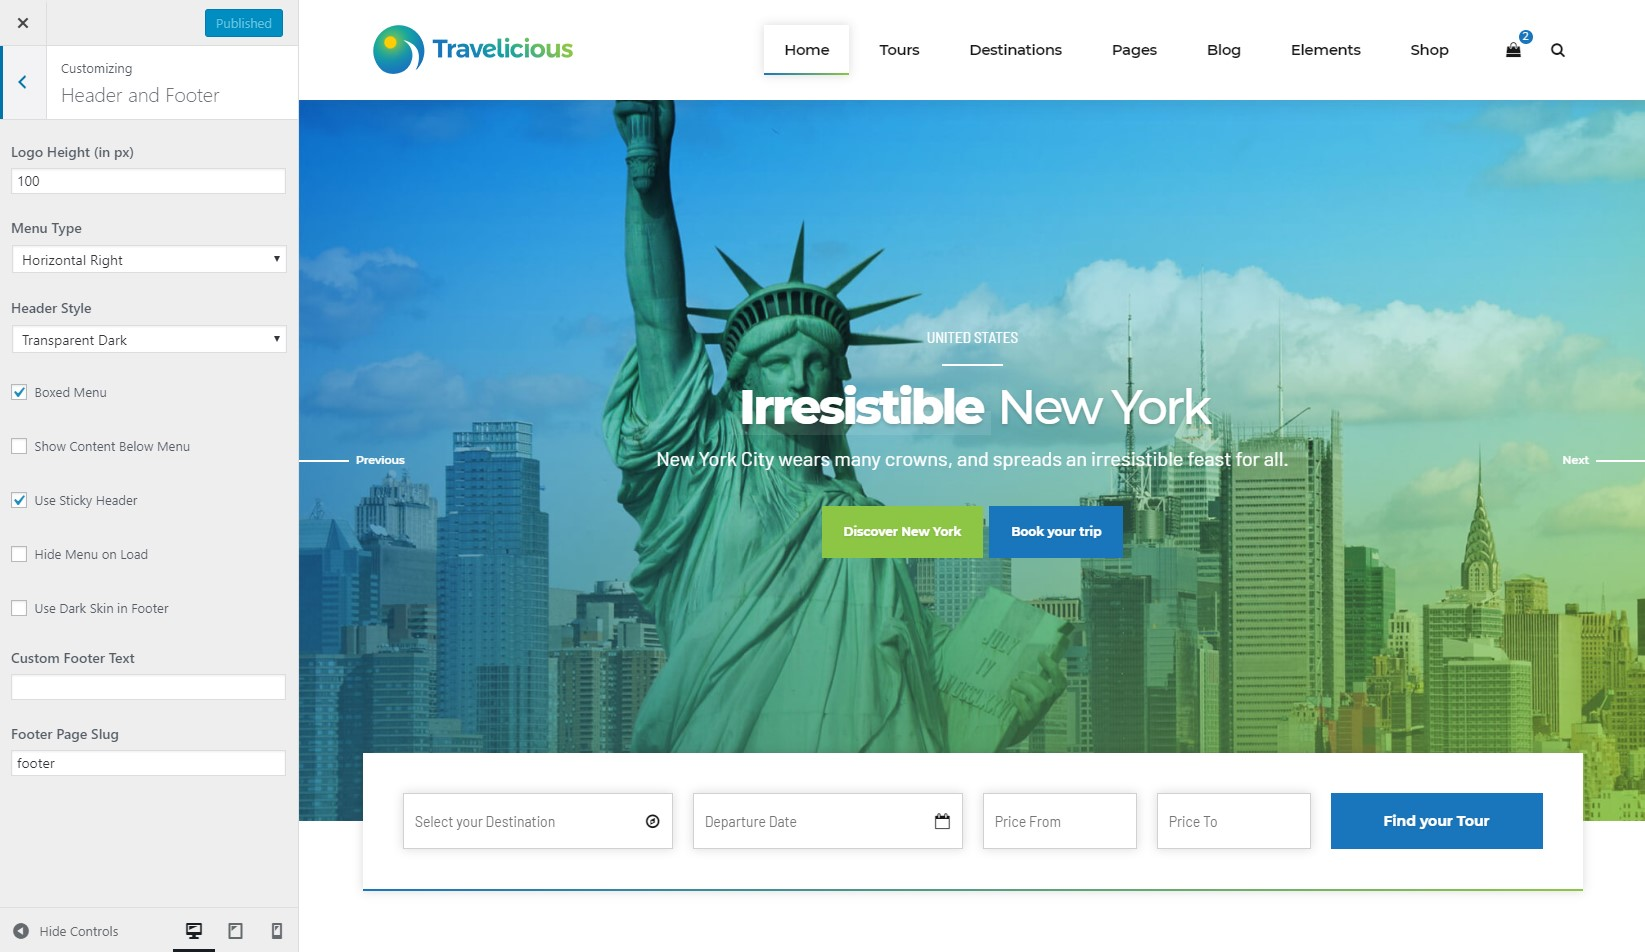 https://documentation.bold-themes.com/travelicious/wp-content/uploads/sites/37/2018/10/header-and-footer.jpg